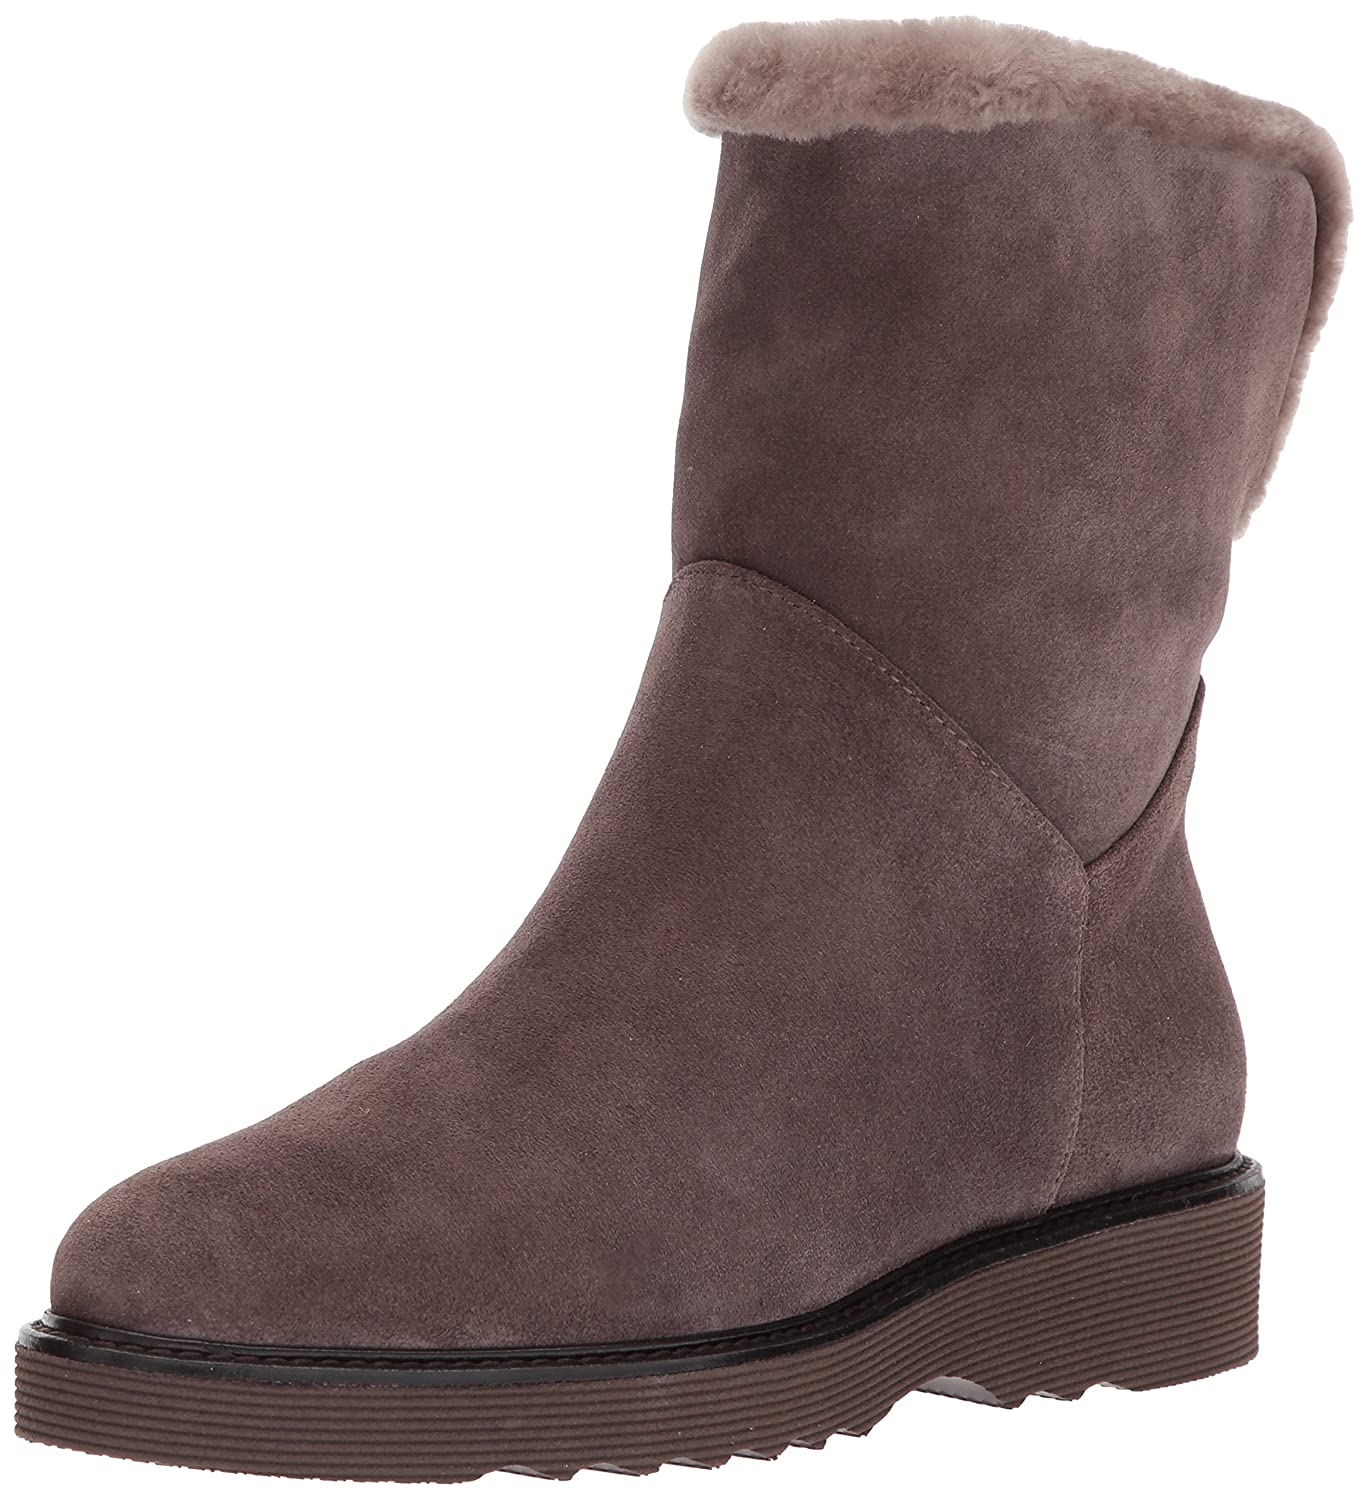 Aquatalia Women's Kimberly Suede/Shearling B06XNND74X 12 M M US|Anthracite